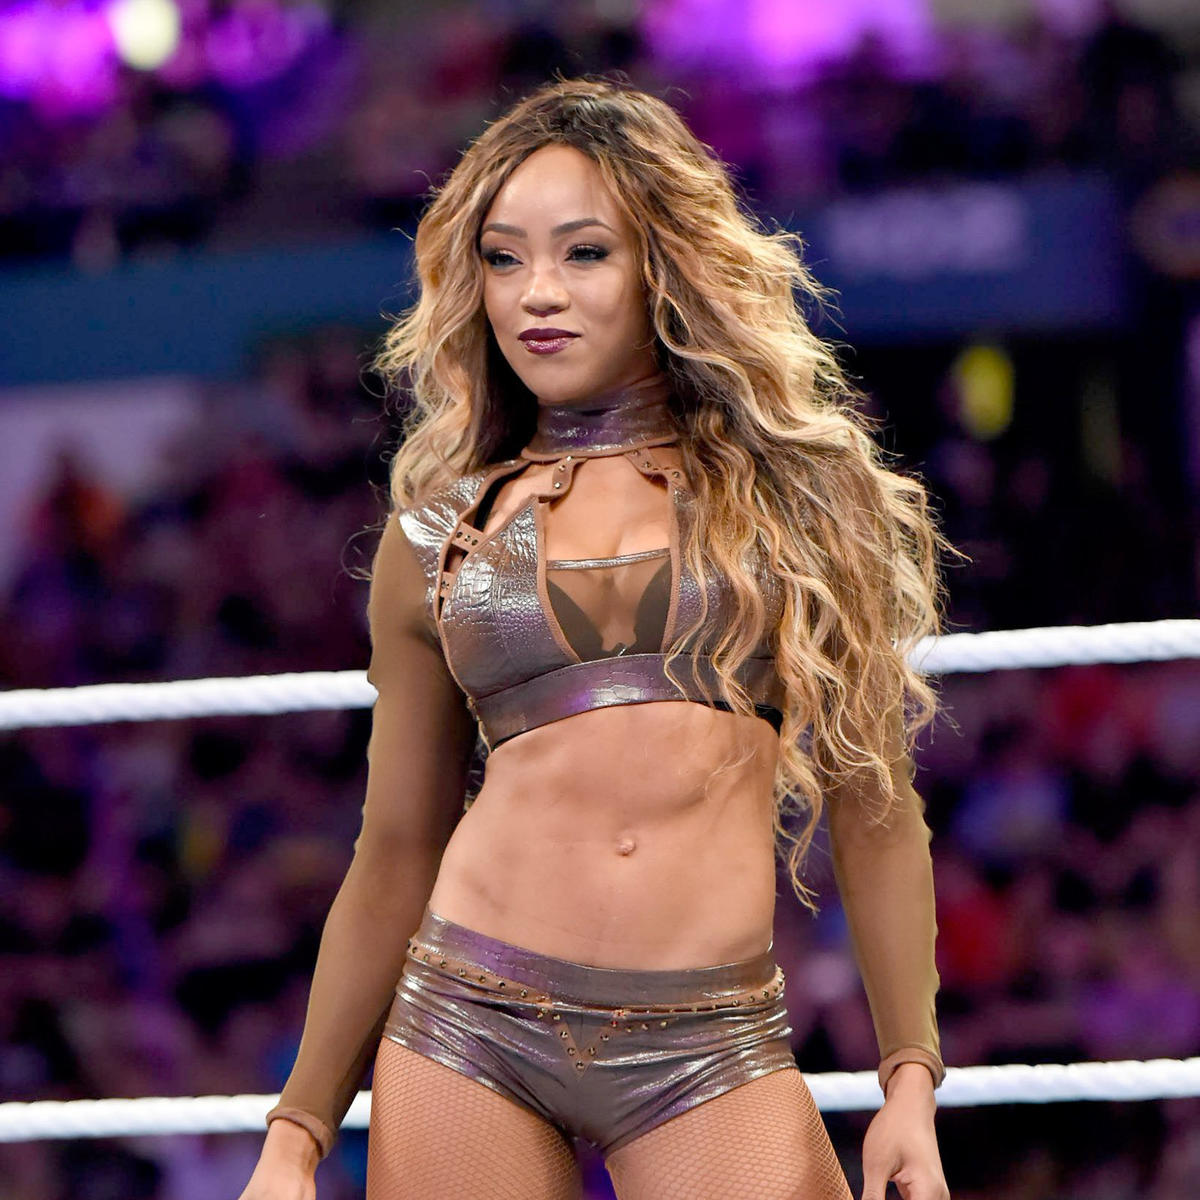 Pics WWE Alicia Fox nudes (83 foto and video), Tits, Leaked, Boobs, butt 2006